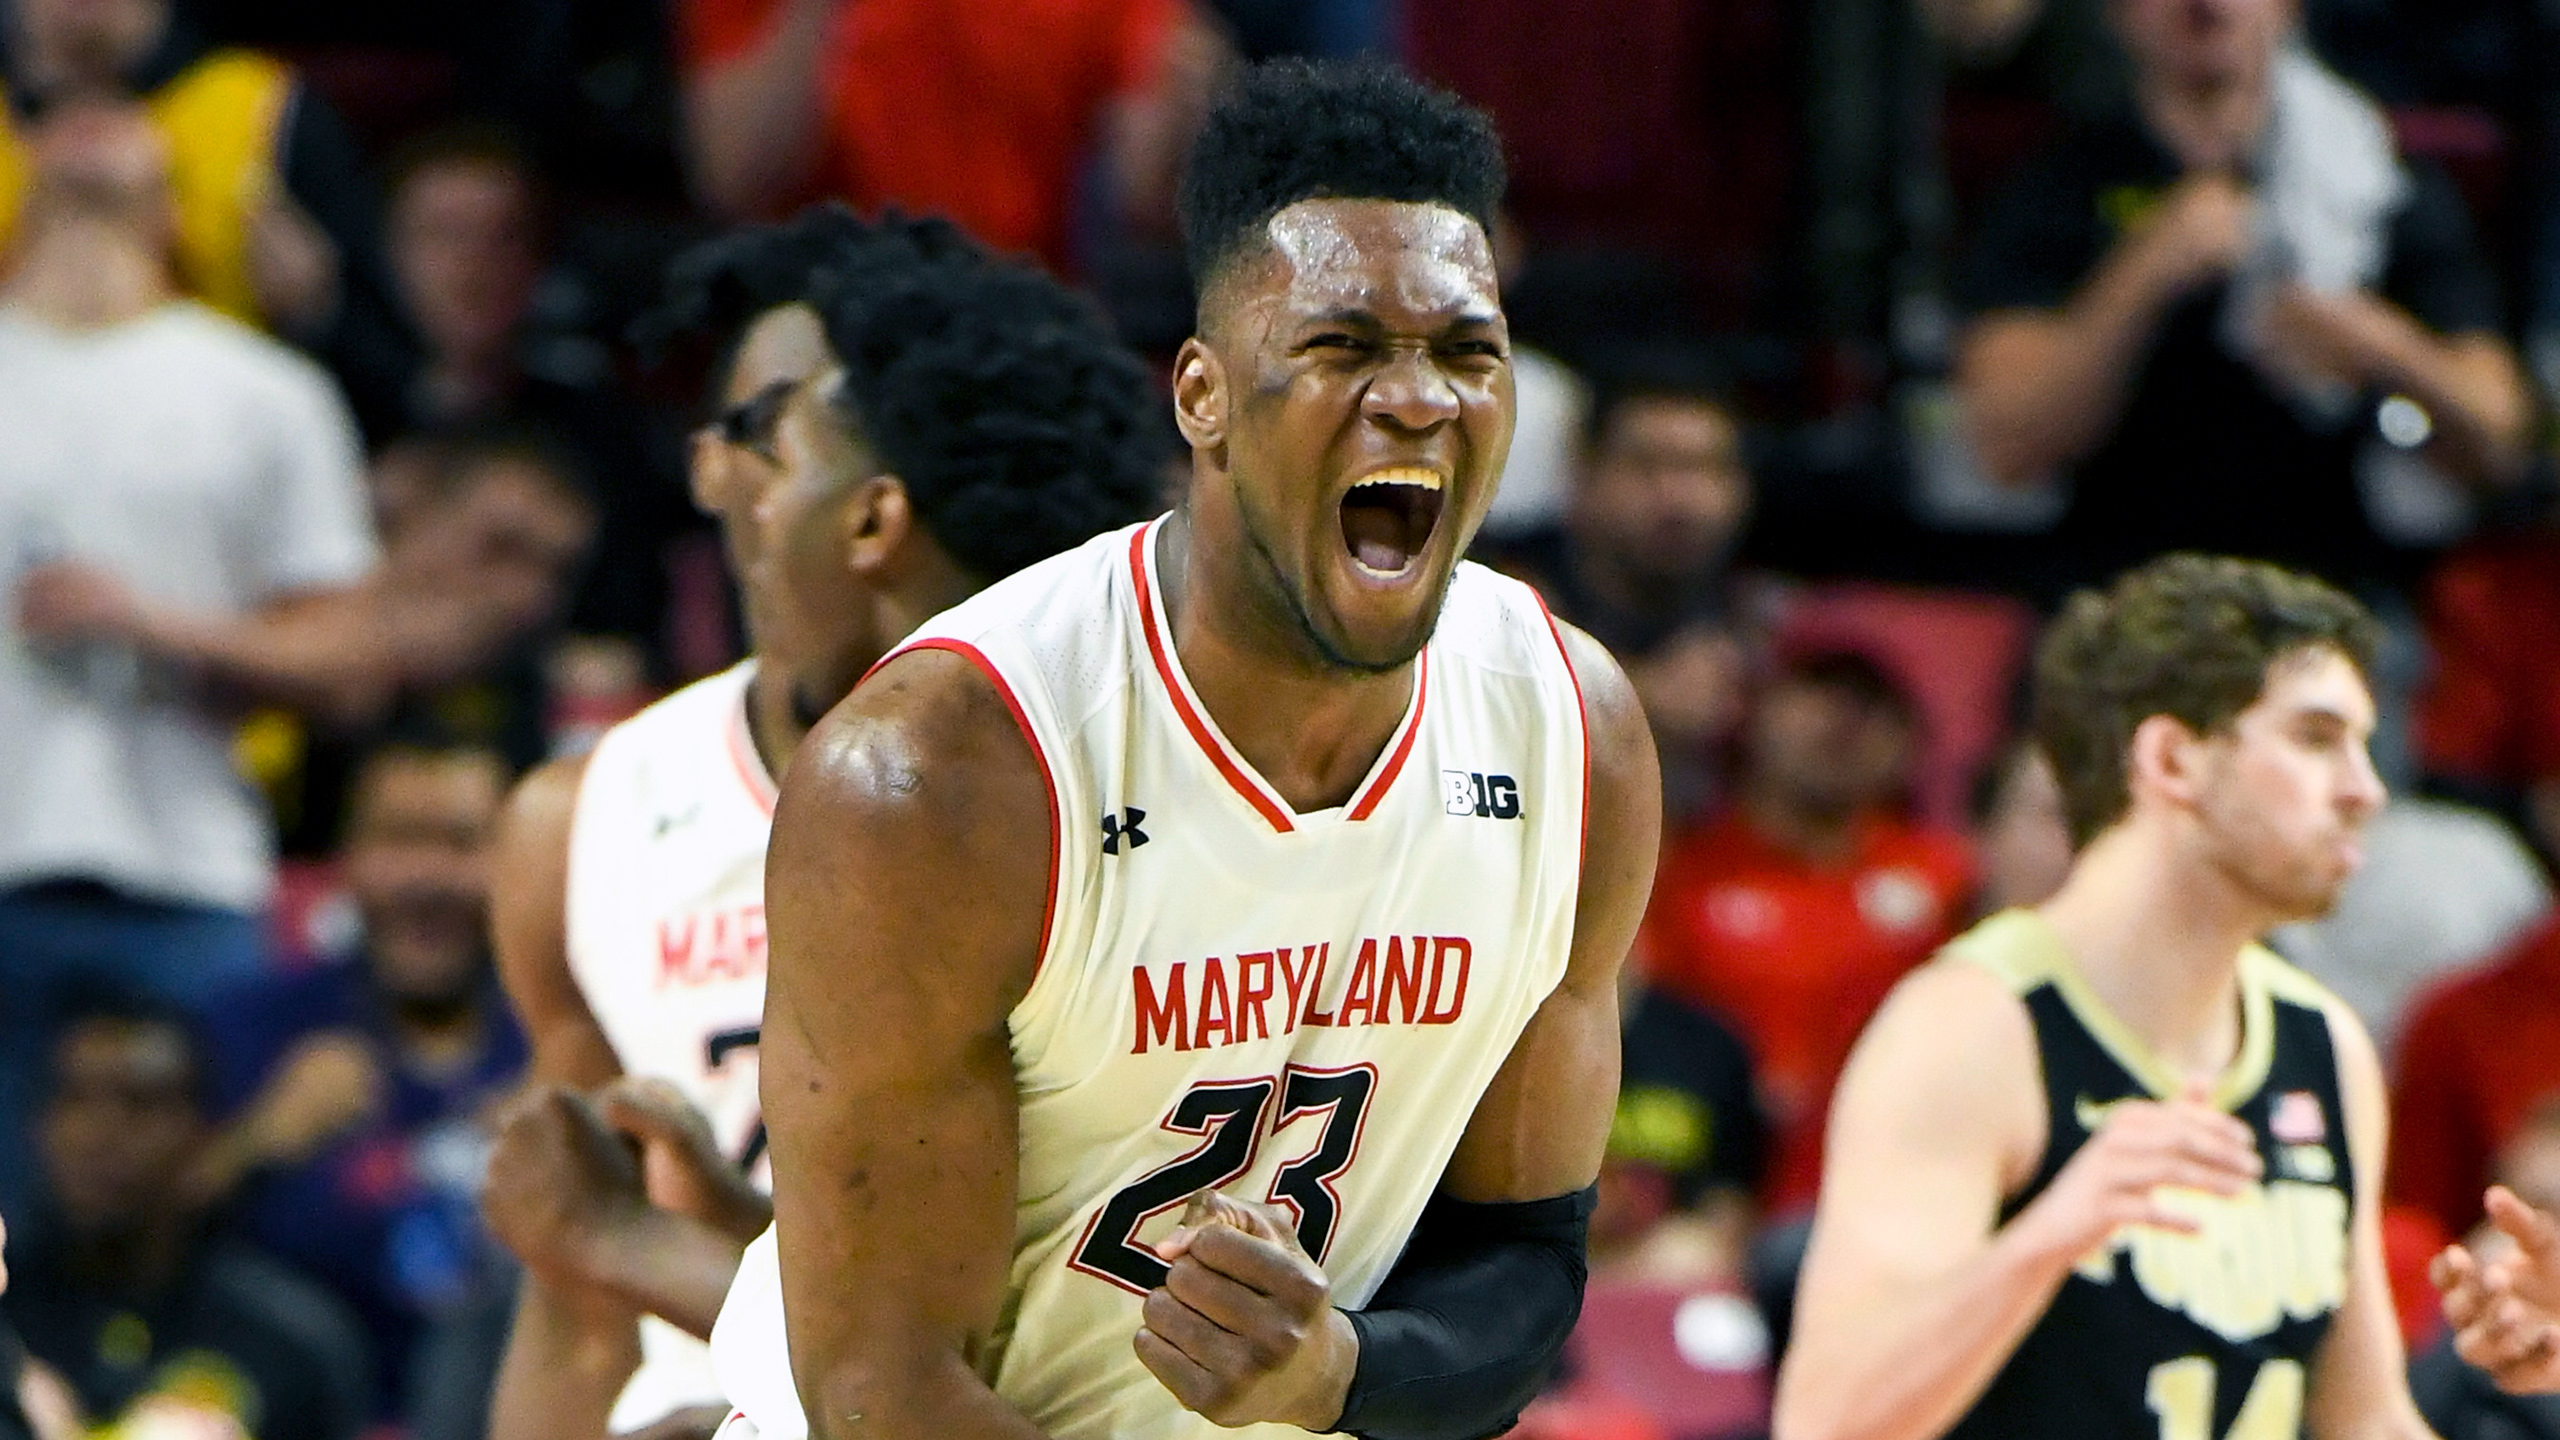 Ohio State vs. #24 Maryland (M Basketball)